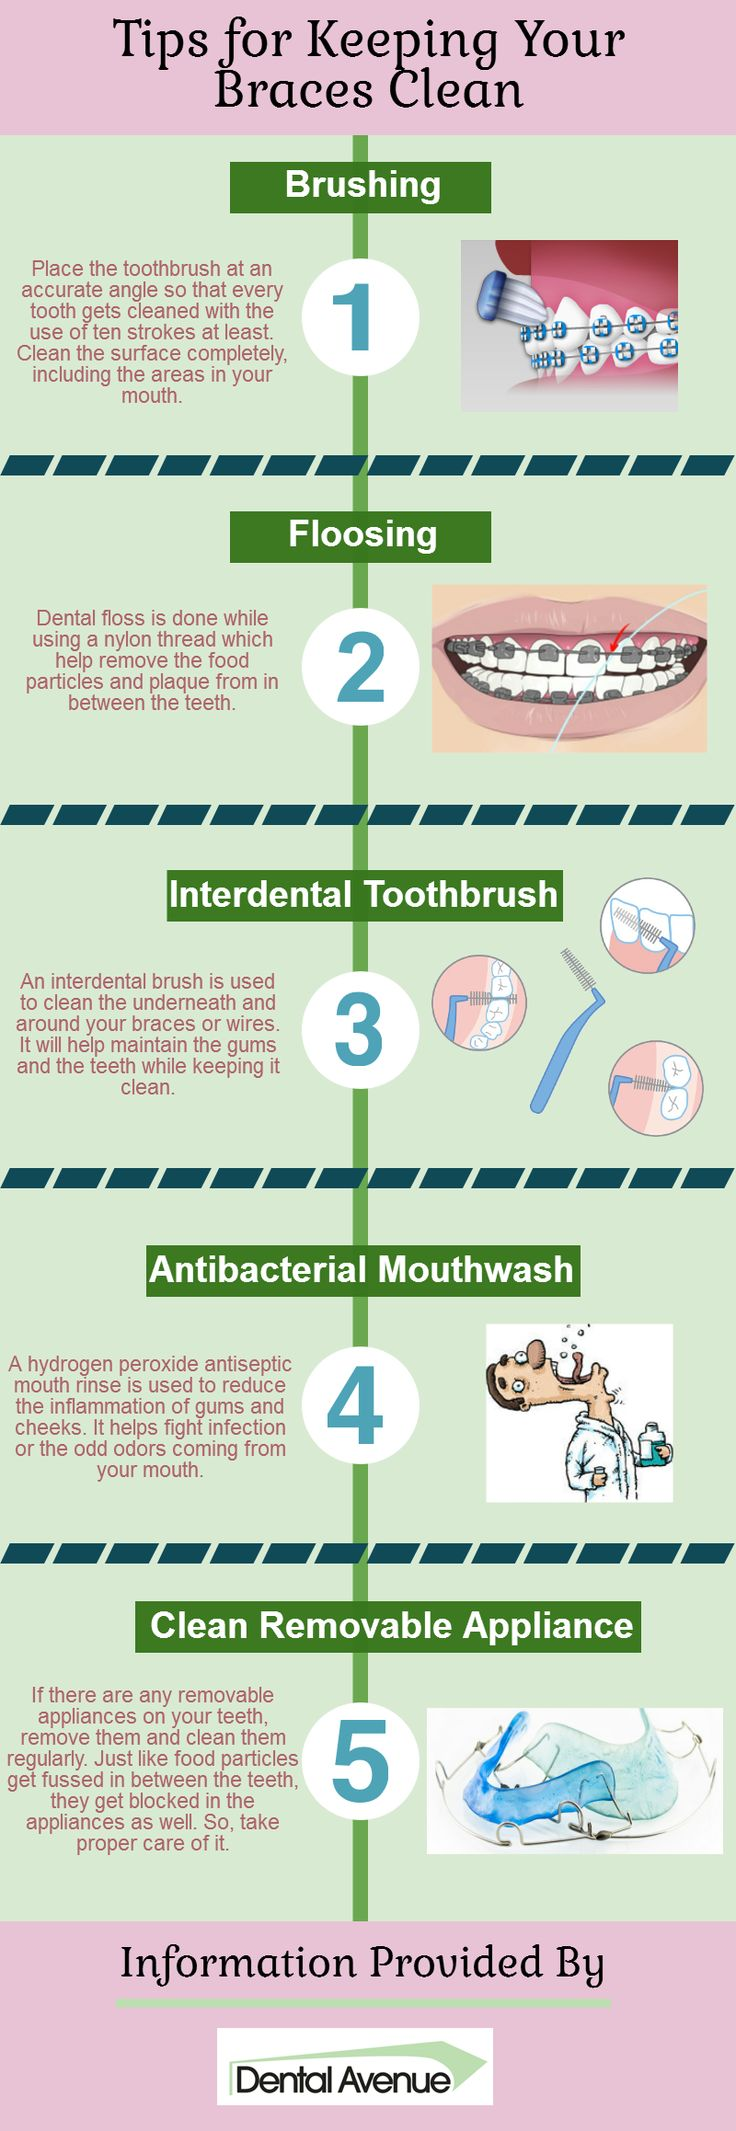 Take A Look At This Infographic For Tips To Keep Your Braces Clean